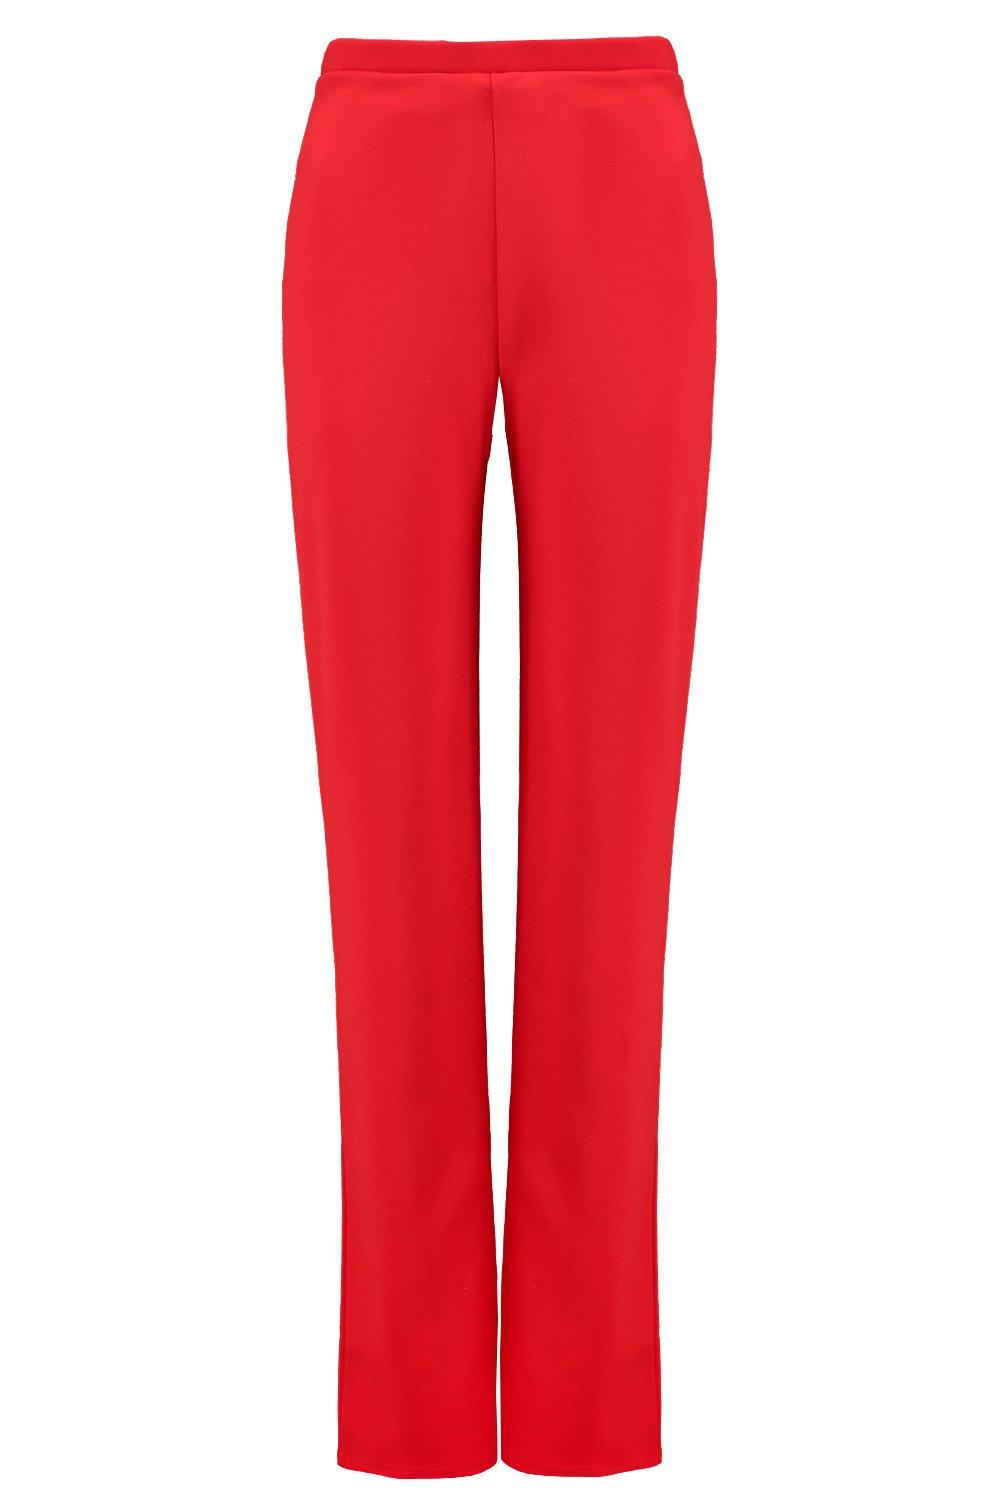 Tall red Tailored Cigarette fire Trouser r8SrqvT